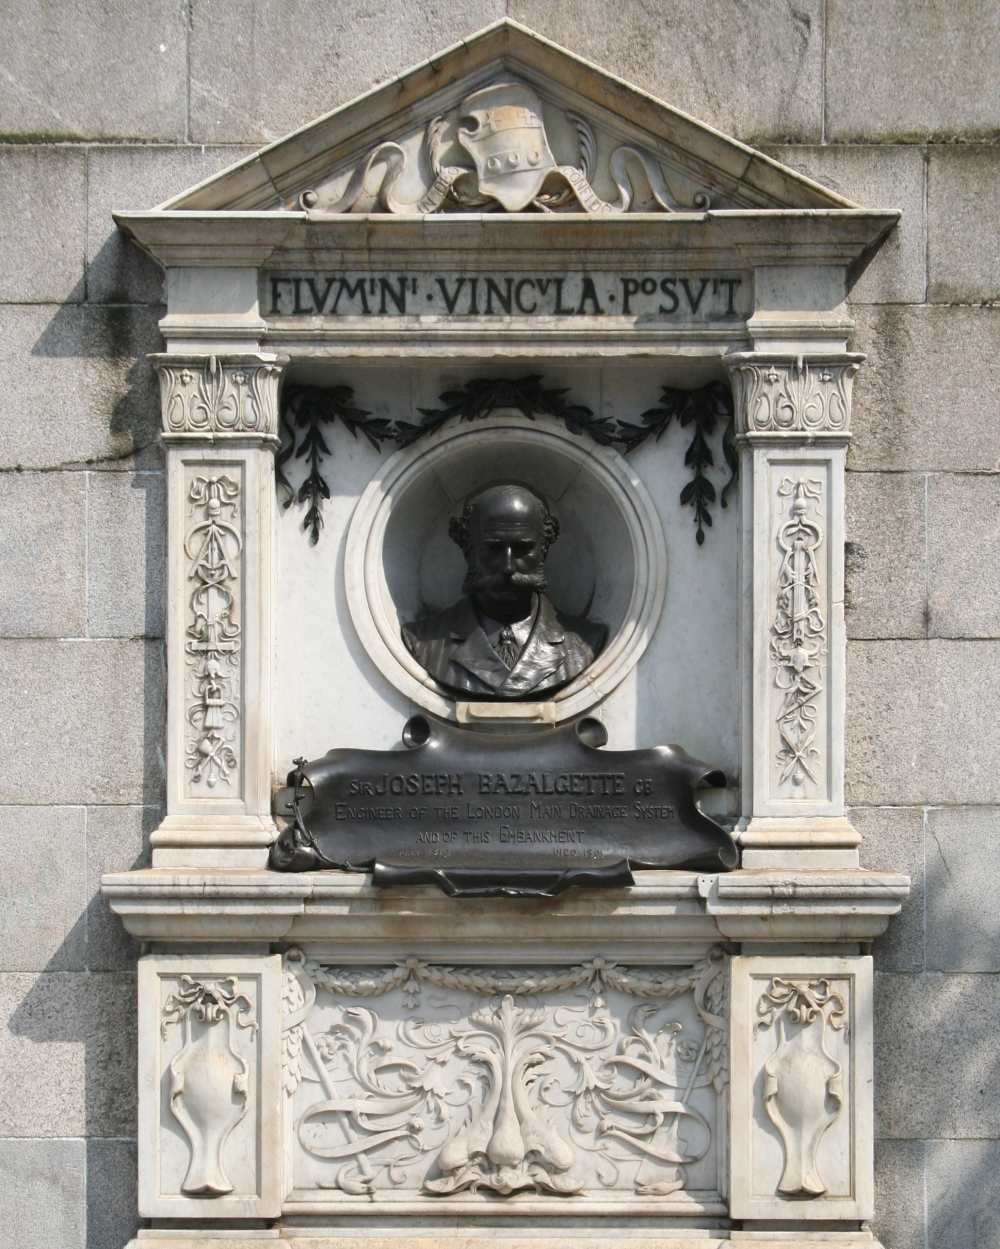 Sir_Joseph_Bazalgette_Memorial